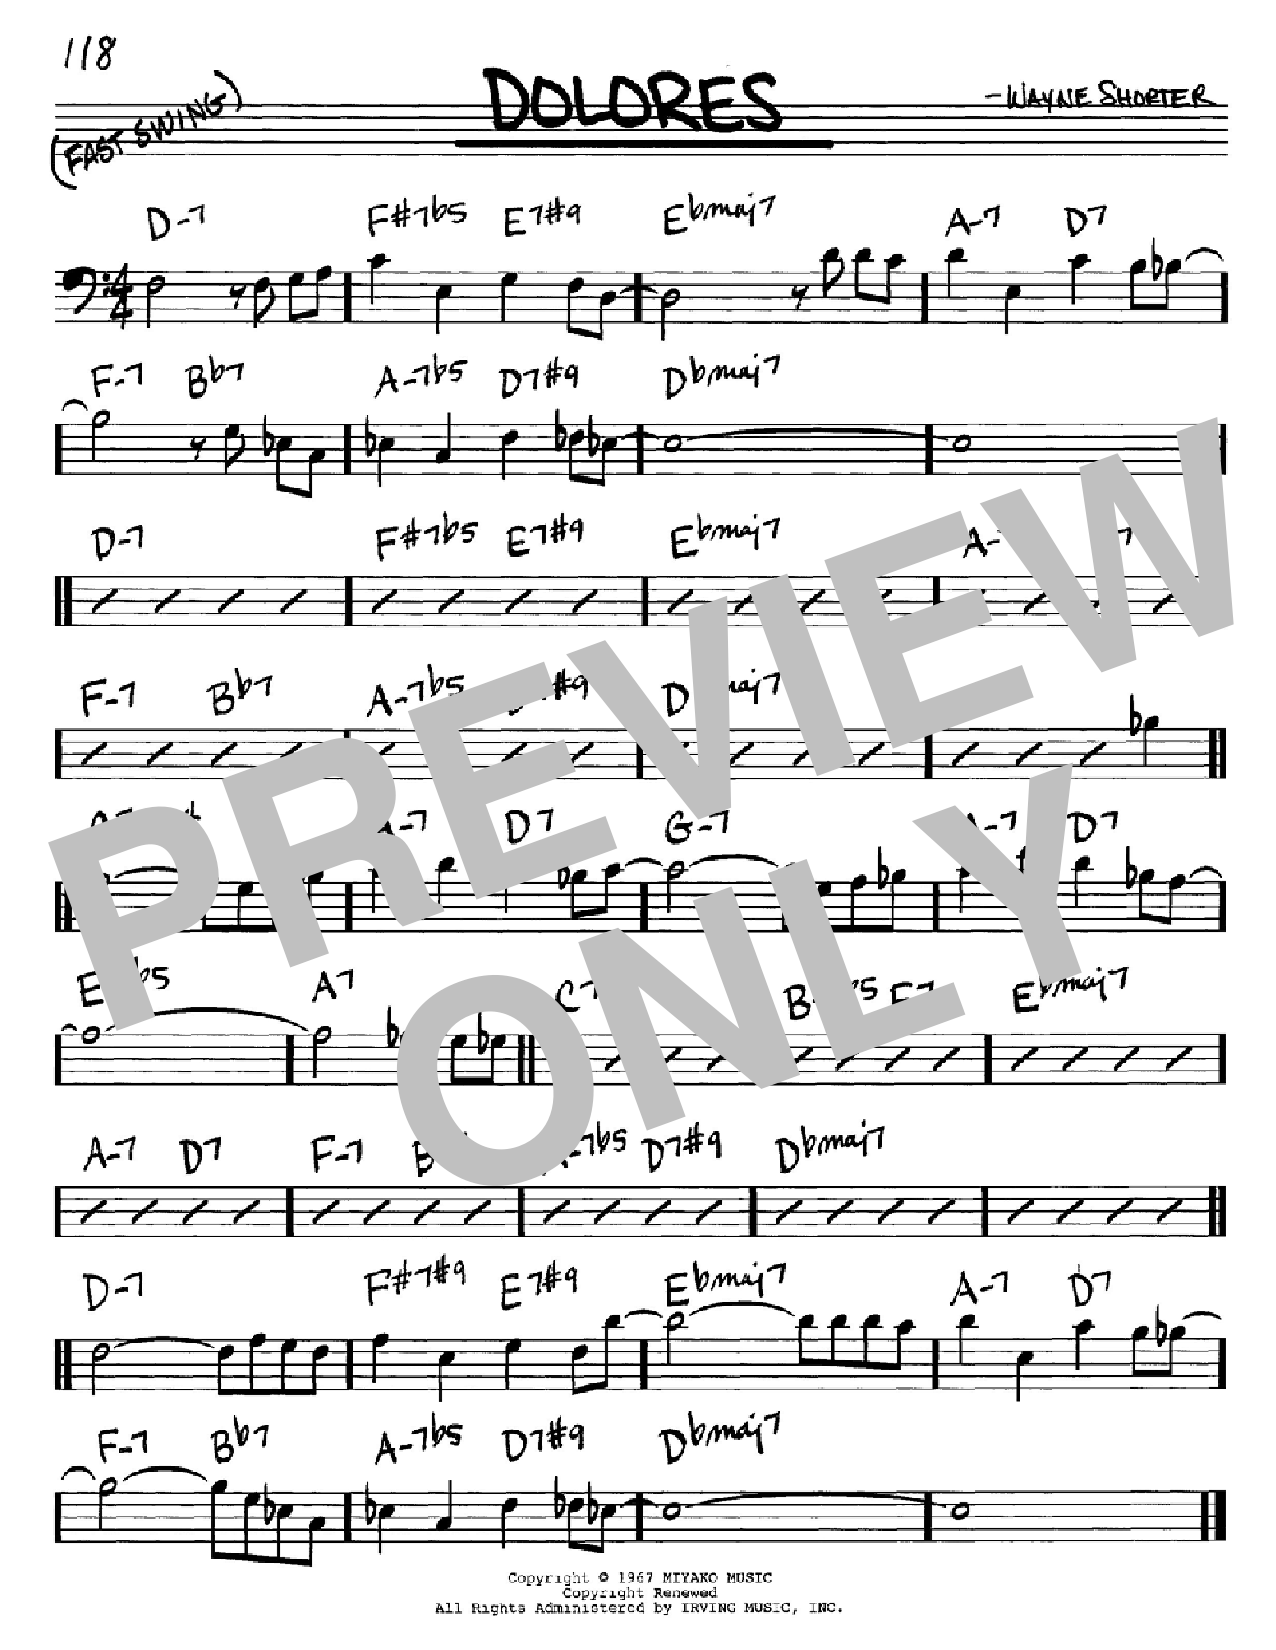 Dolores Sheet Music